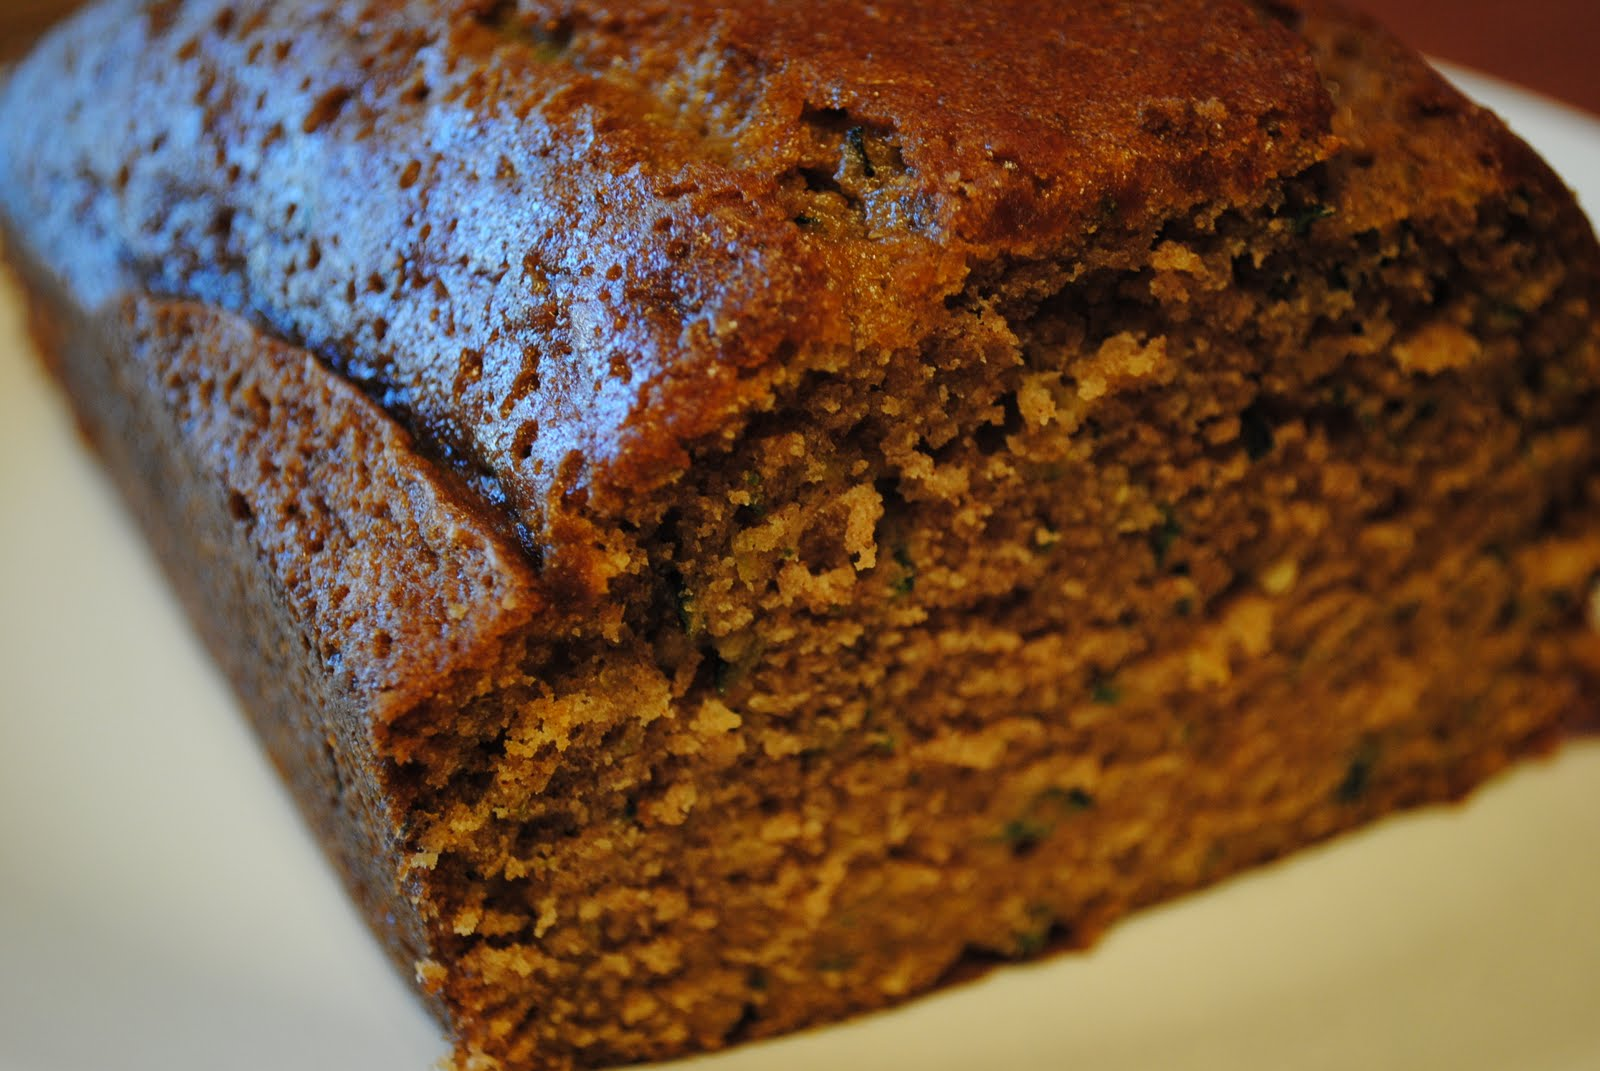 national zucchini bread day five food finds about zucchini a zucchini ...